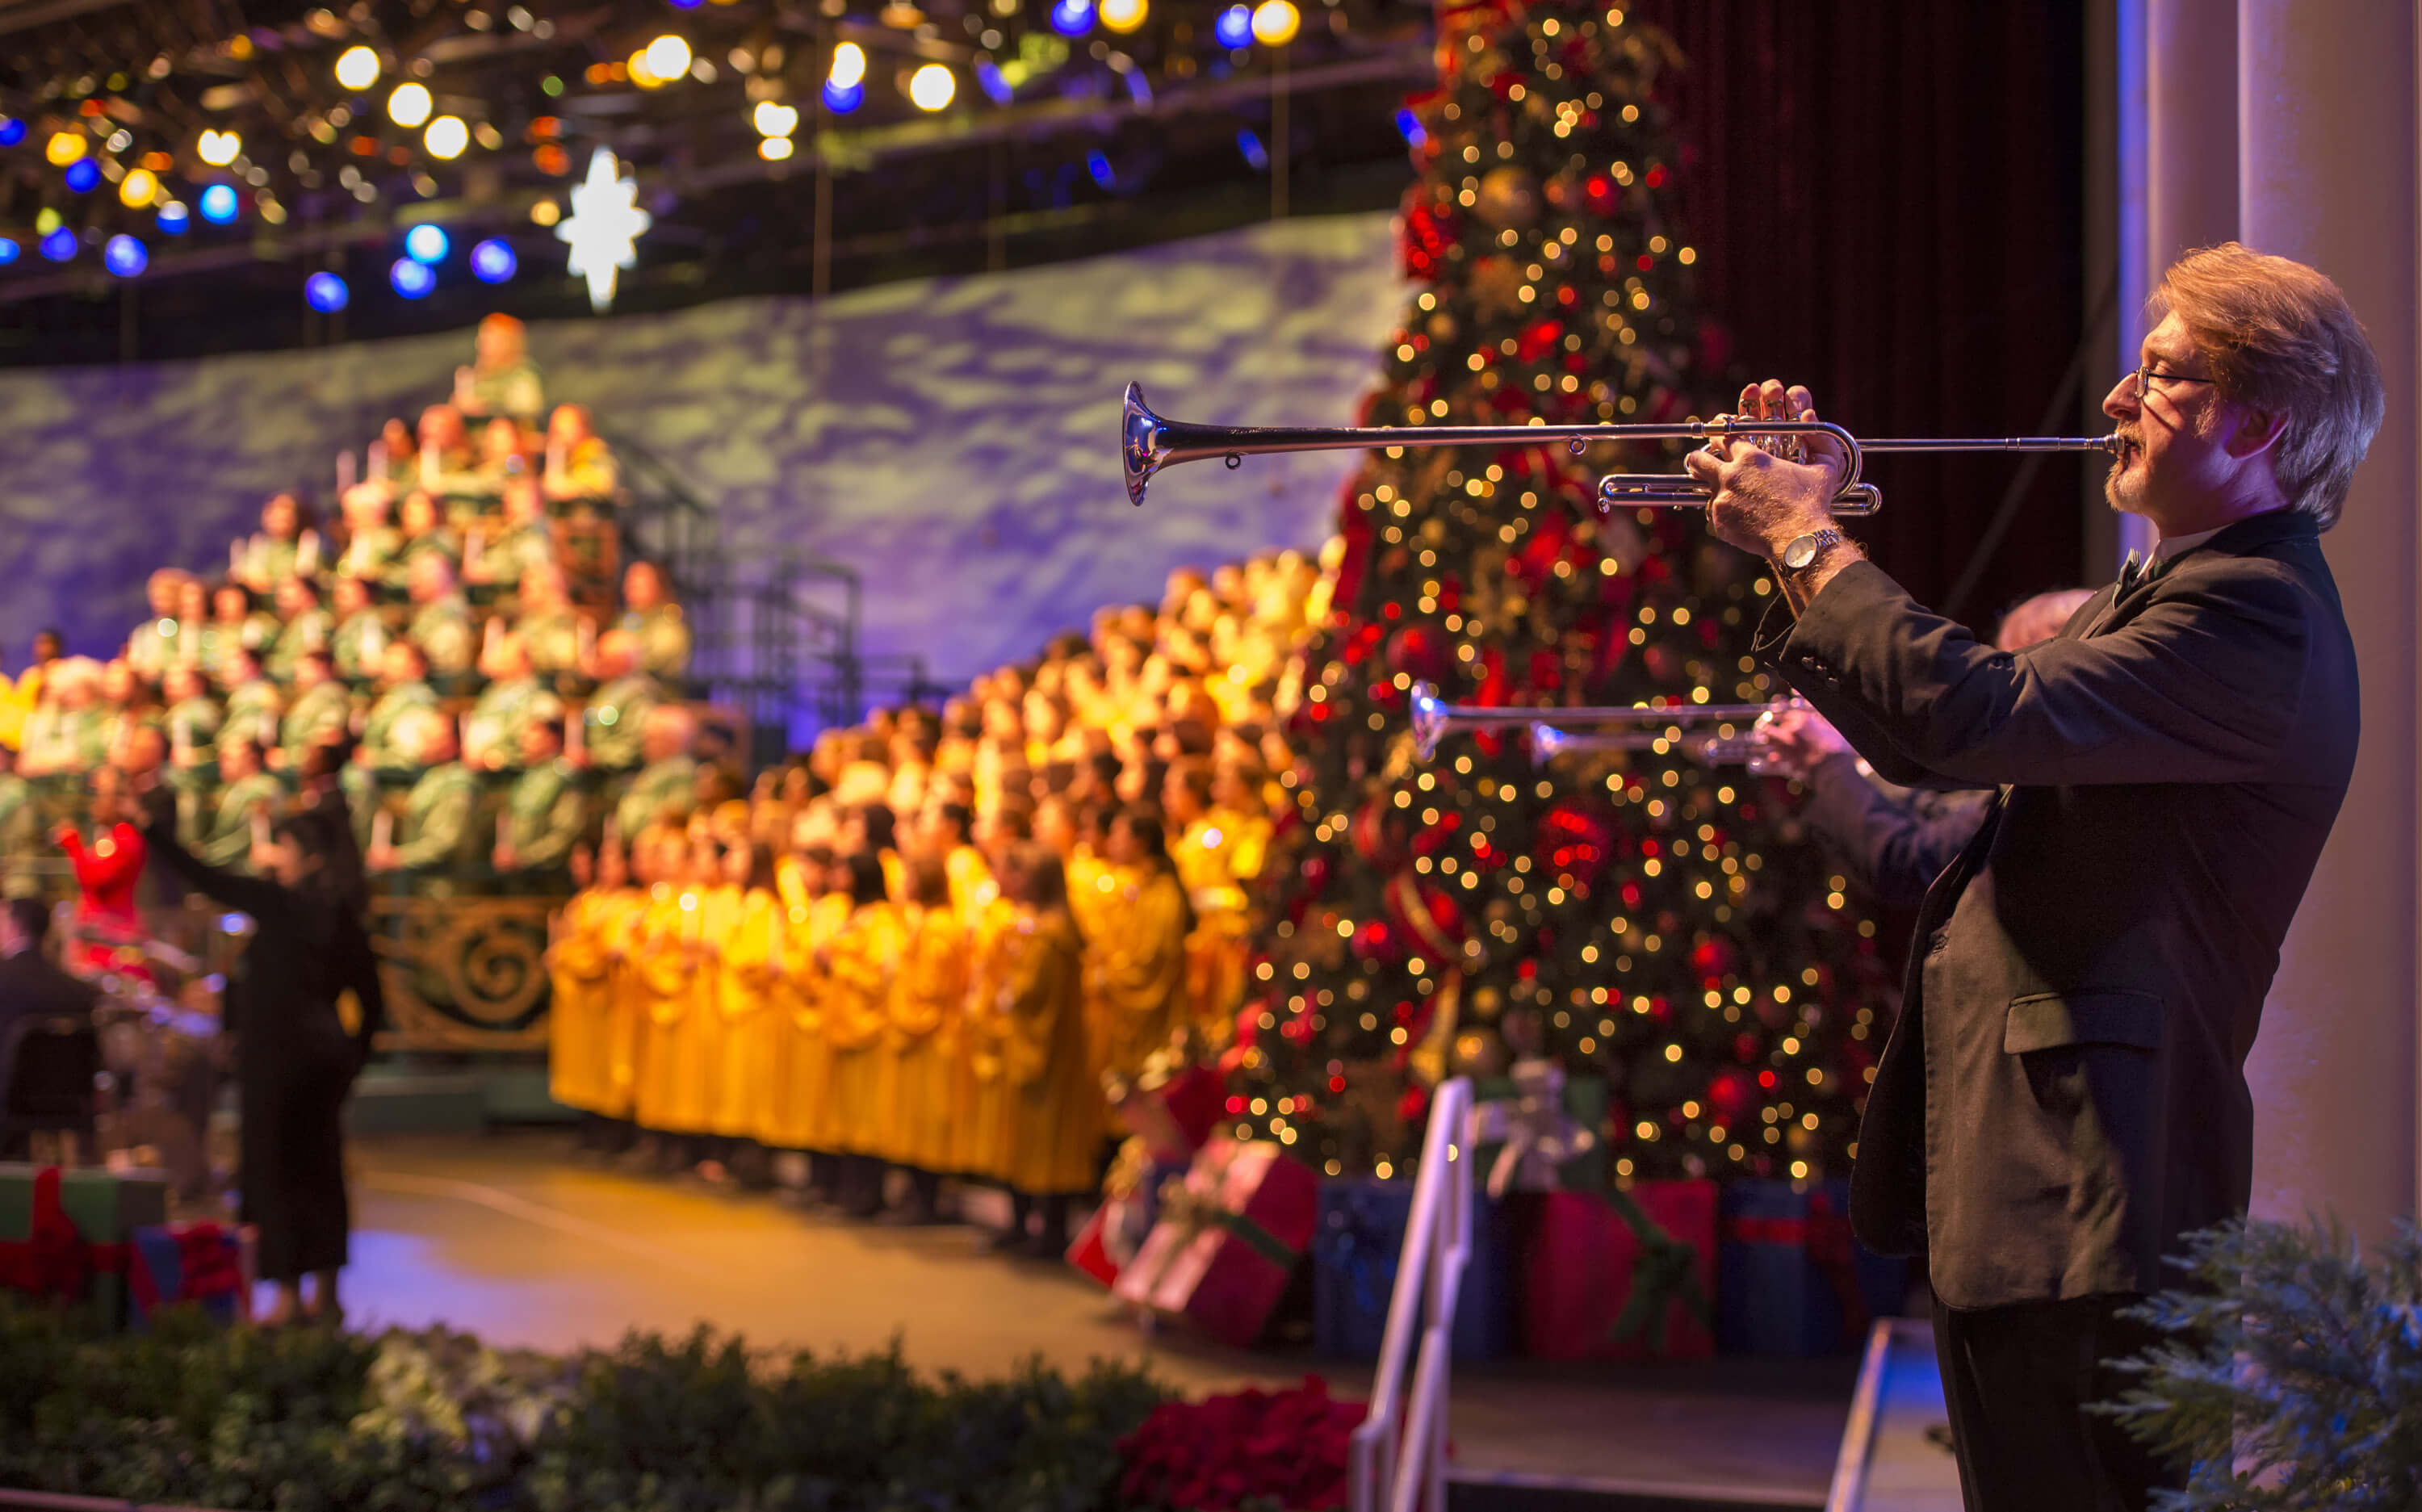 disney world holiday events 2018 epcot candlelight processional